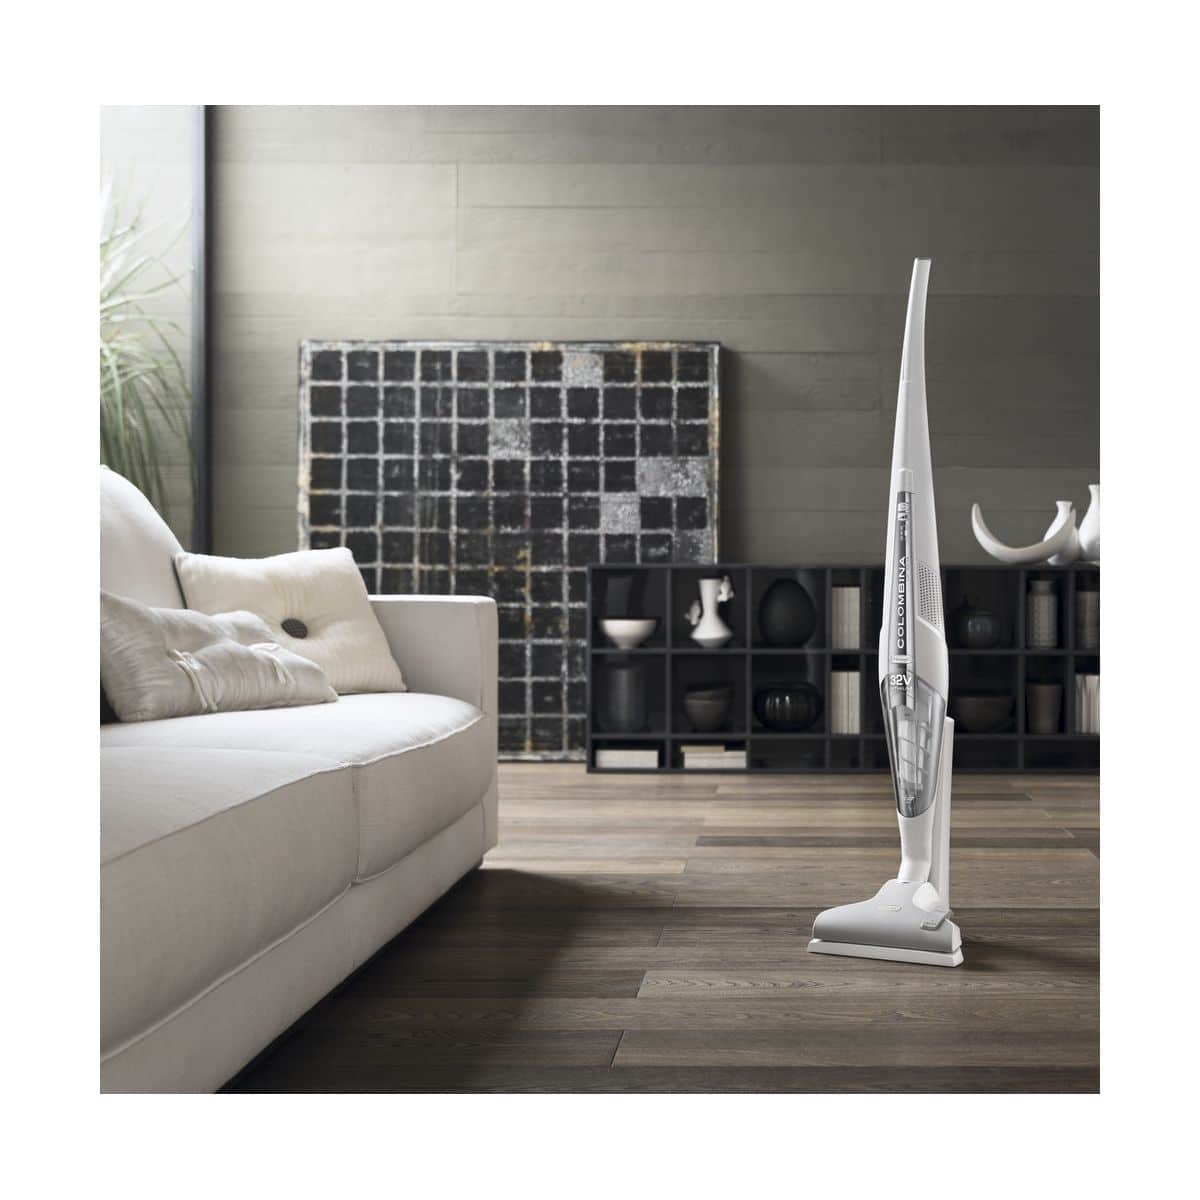 avis aspirateur compagnie du bagage test comparatif. Black Bedroom Furniture Sets. Home Design Ideas